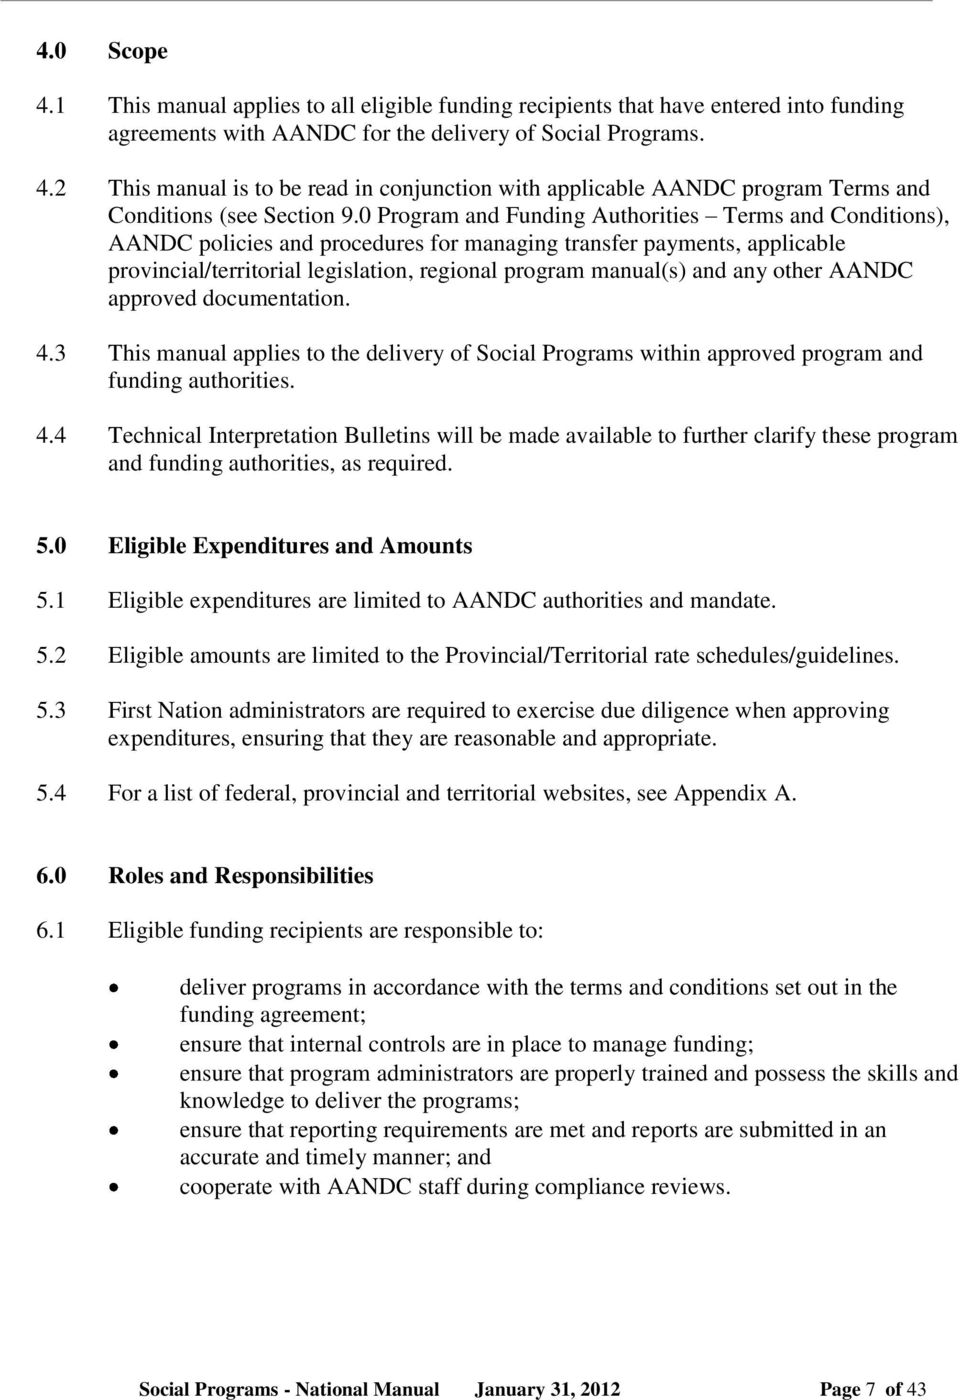 any other AANDC approved documentation. 4.3 This manual applies to the delivery of Social Programs within approved program and funding authorities. 4.4 Technical Interpretation Bulletins will be made available to further clarify these program and funding authorities, as required.